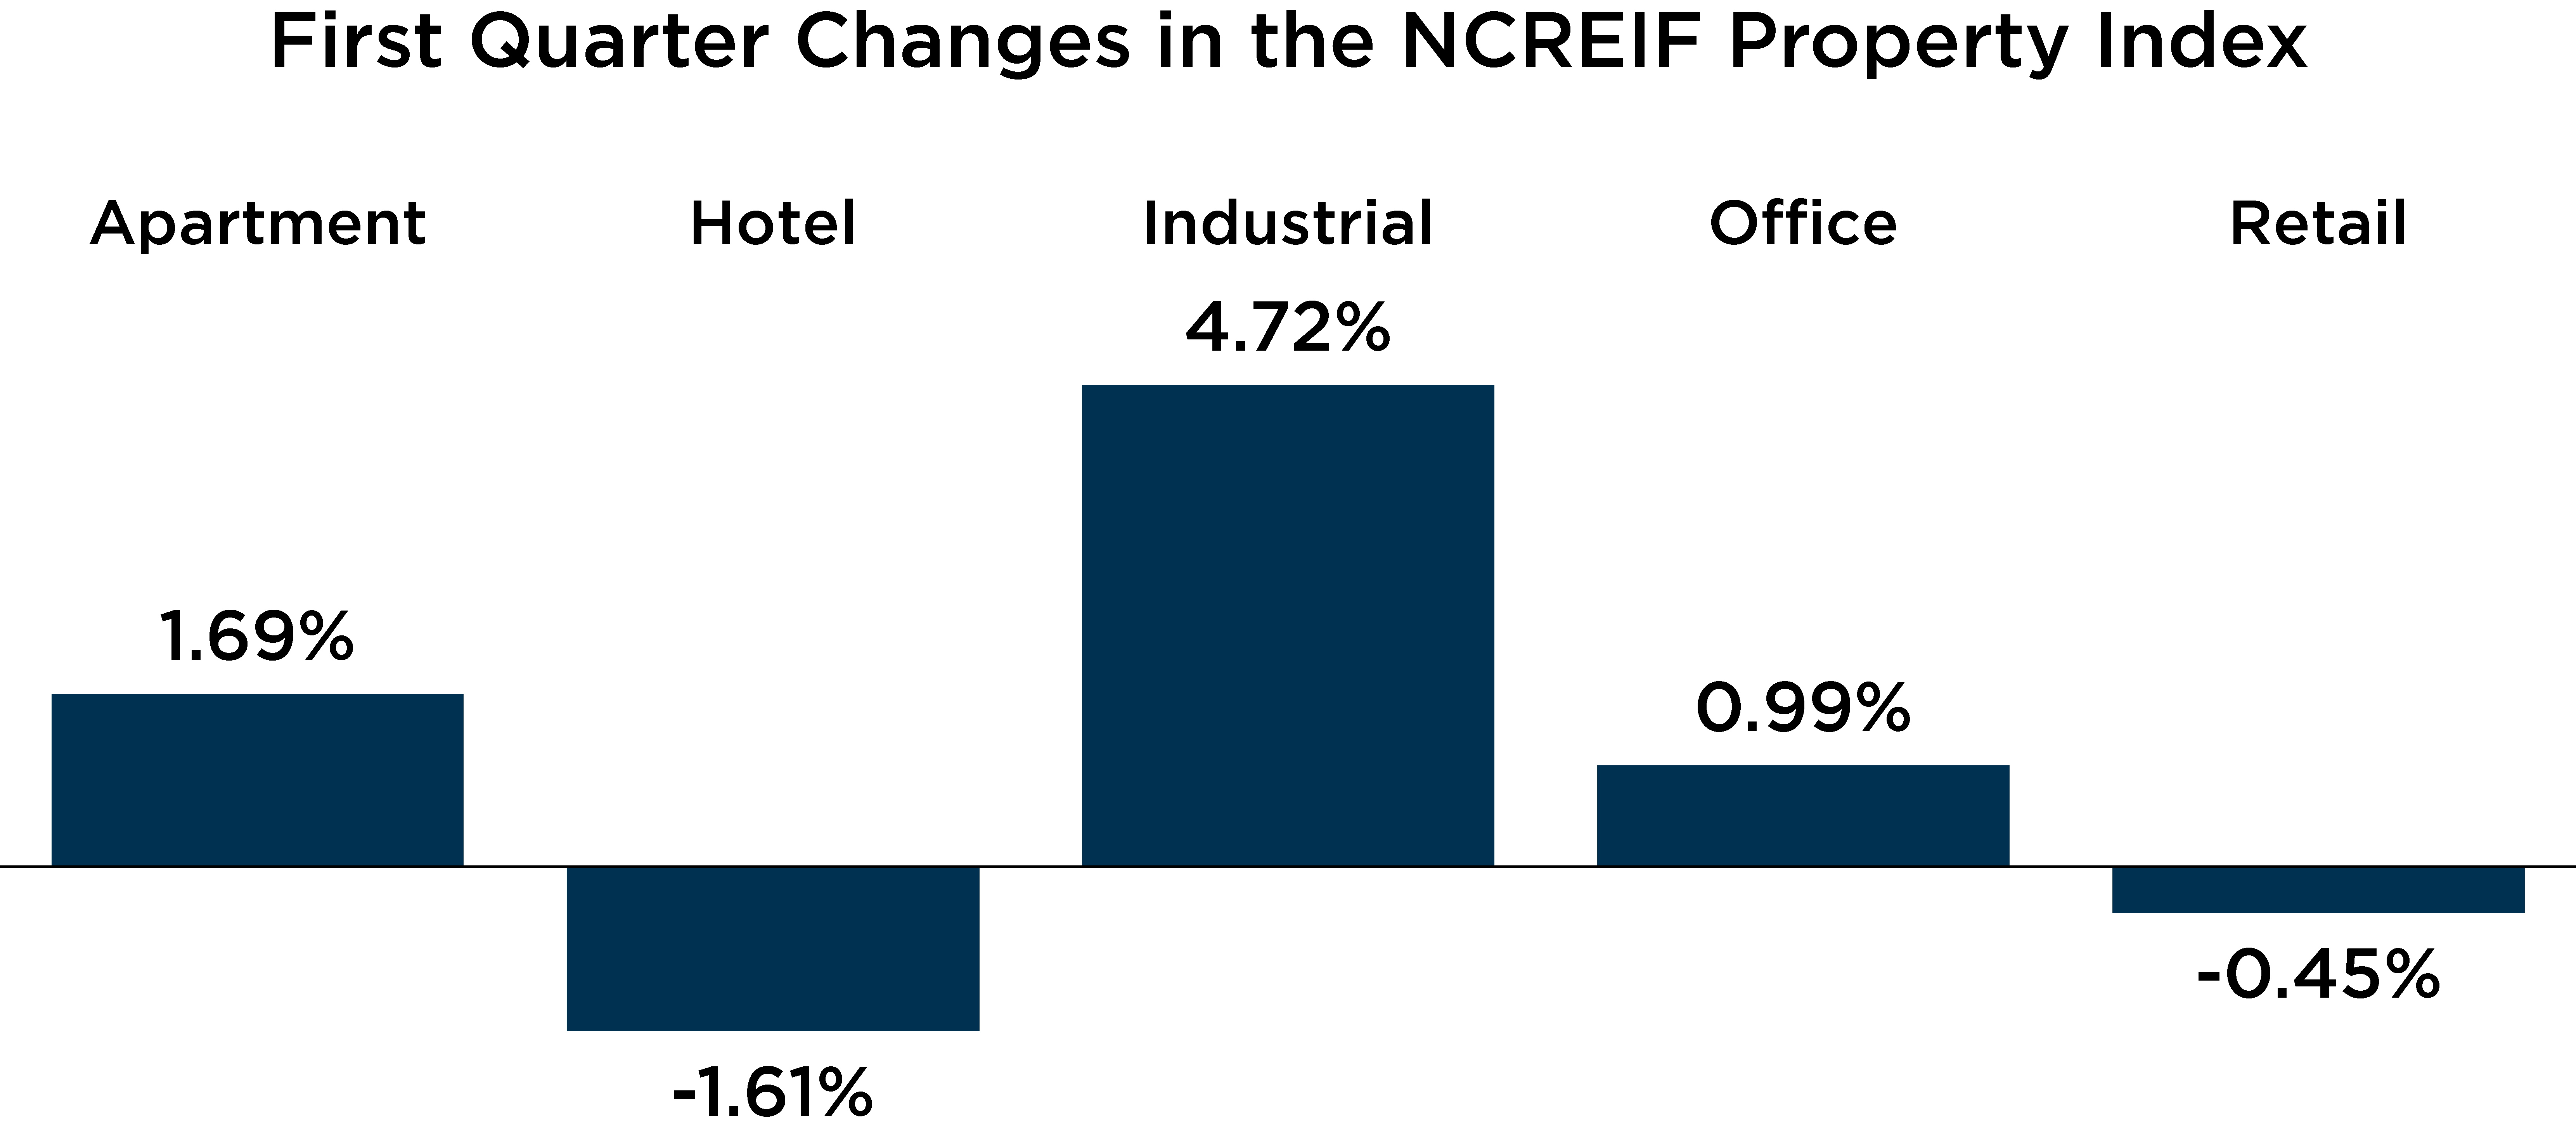 chart depicting First Quarter Changes in the NCREIF Property Index